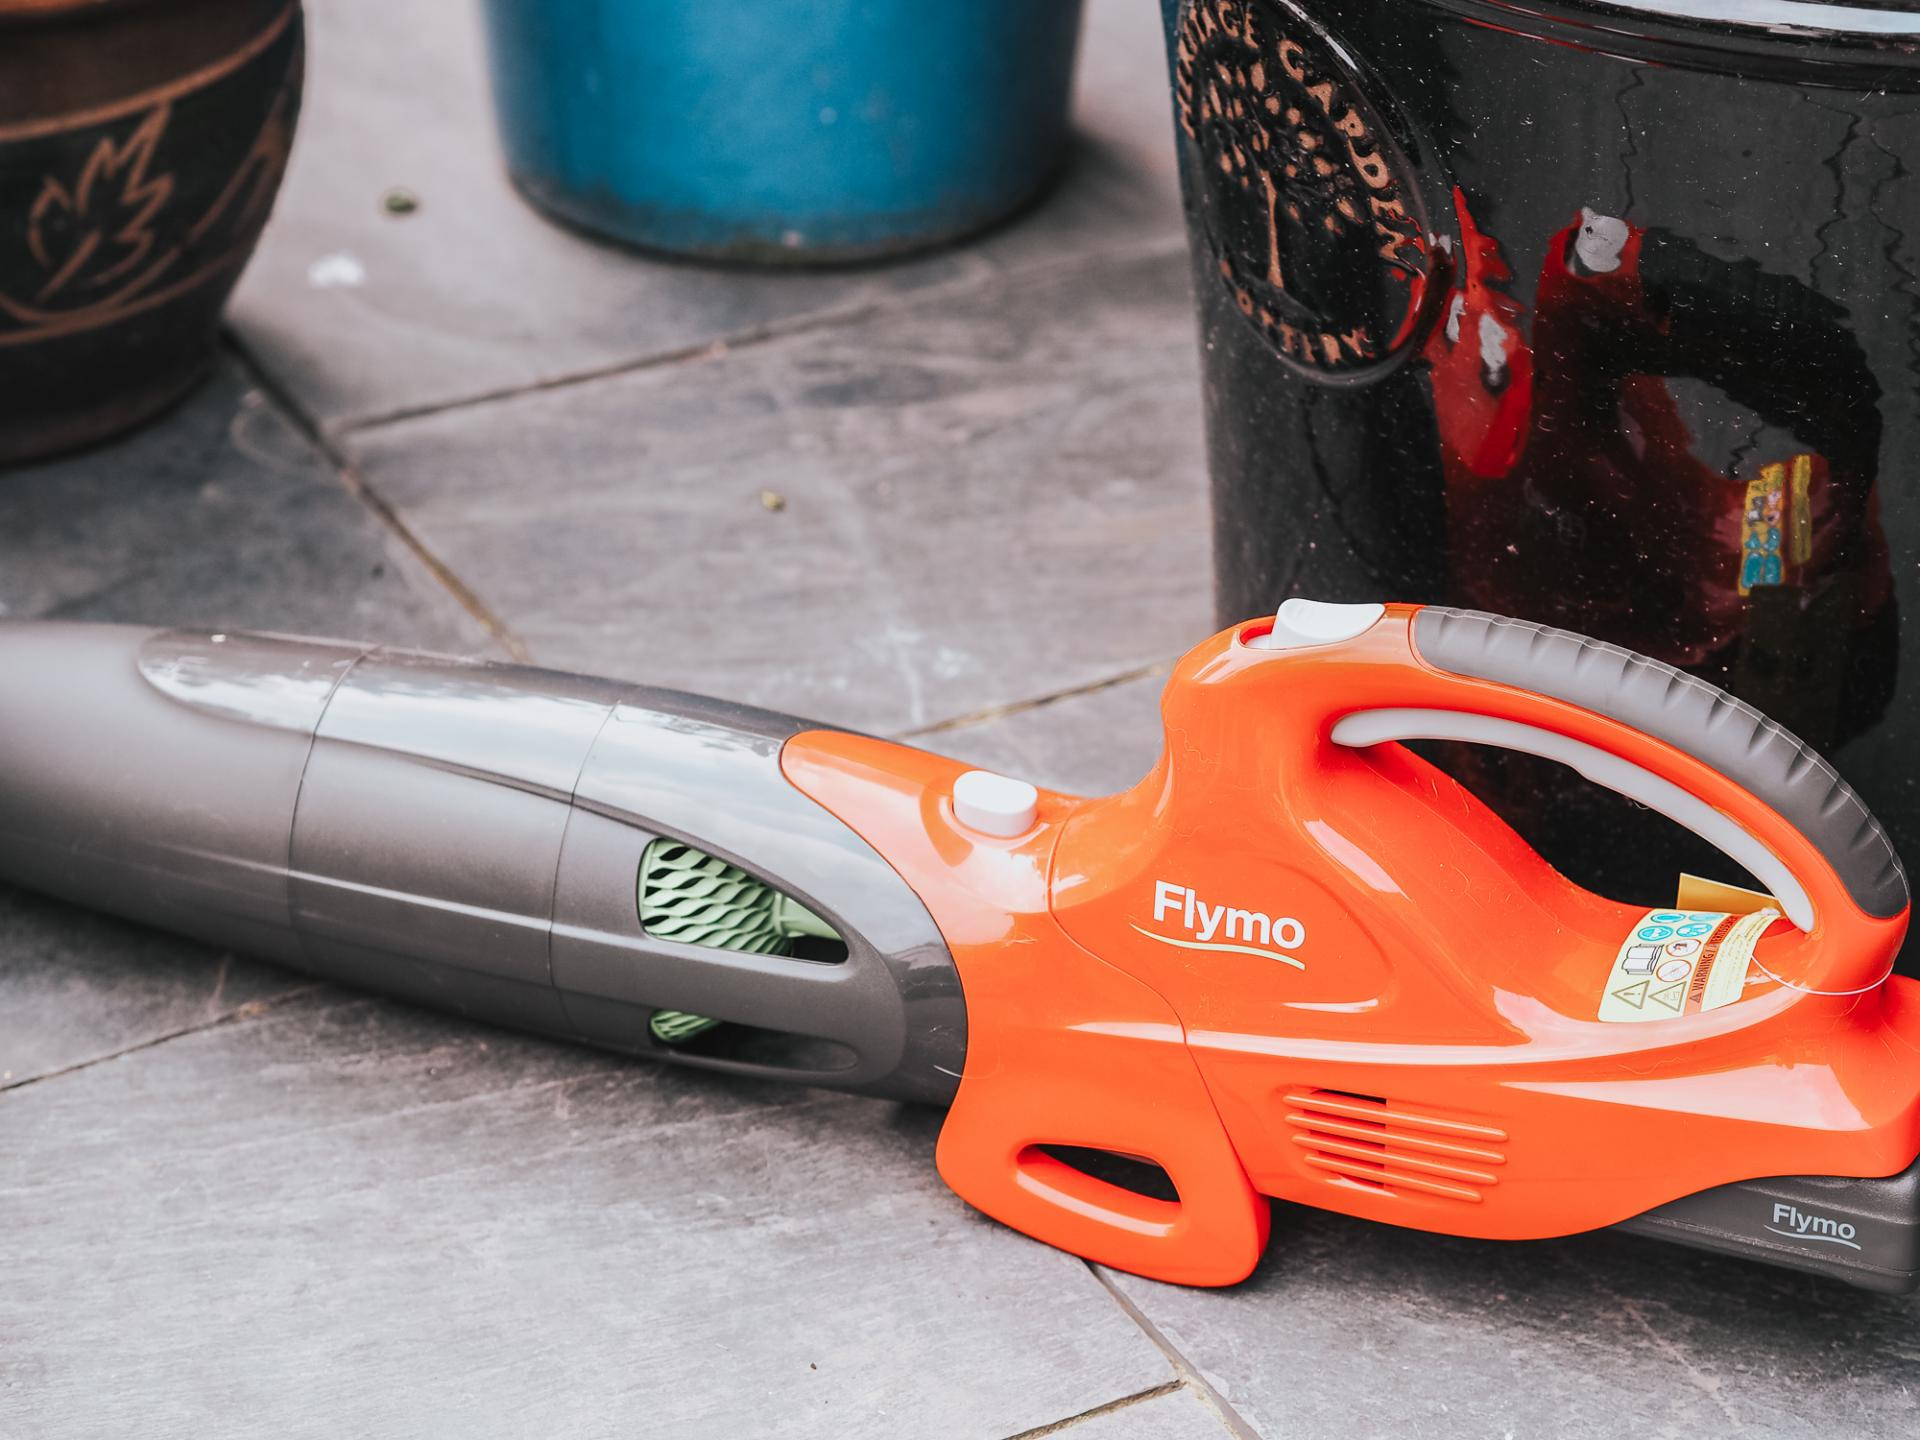 Flymo leaf blower review from blogger Bunnipunch